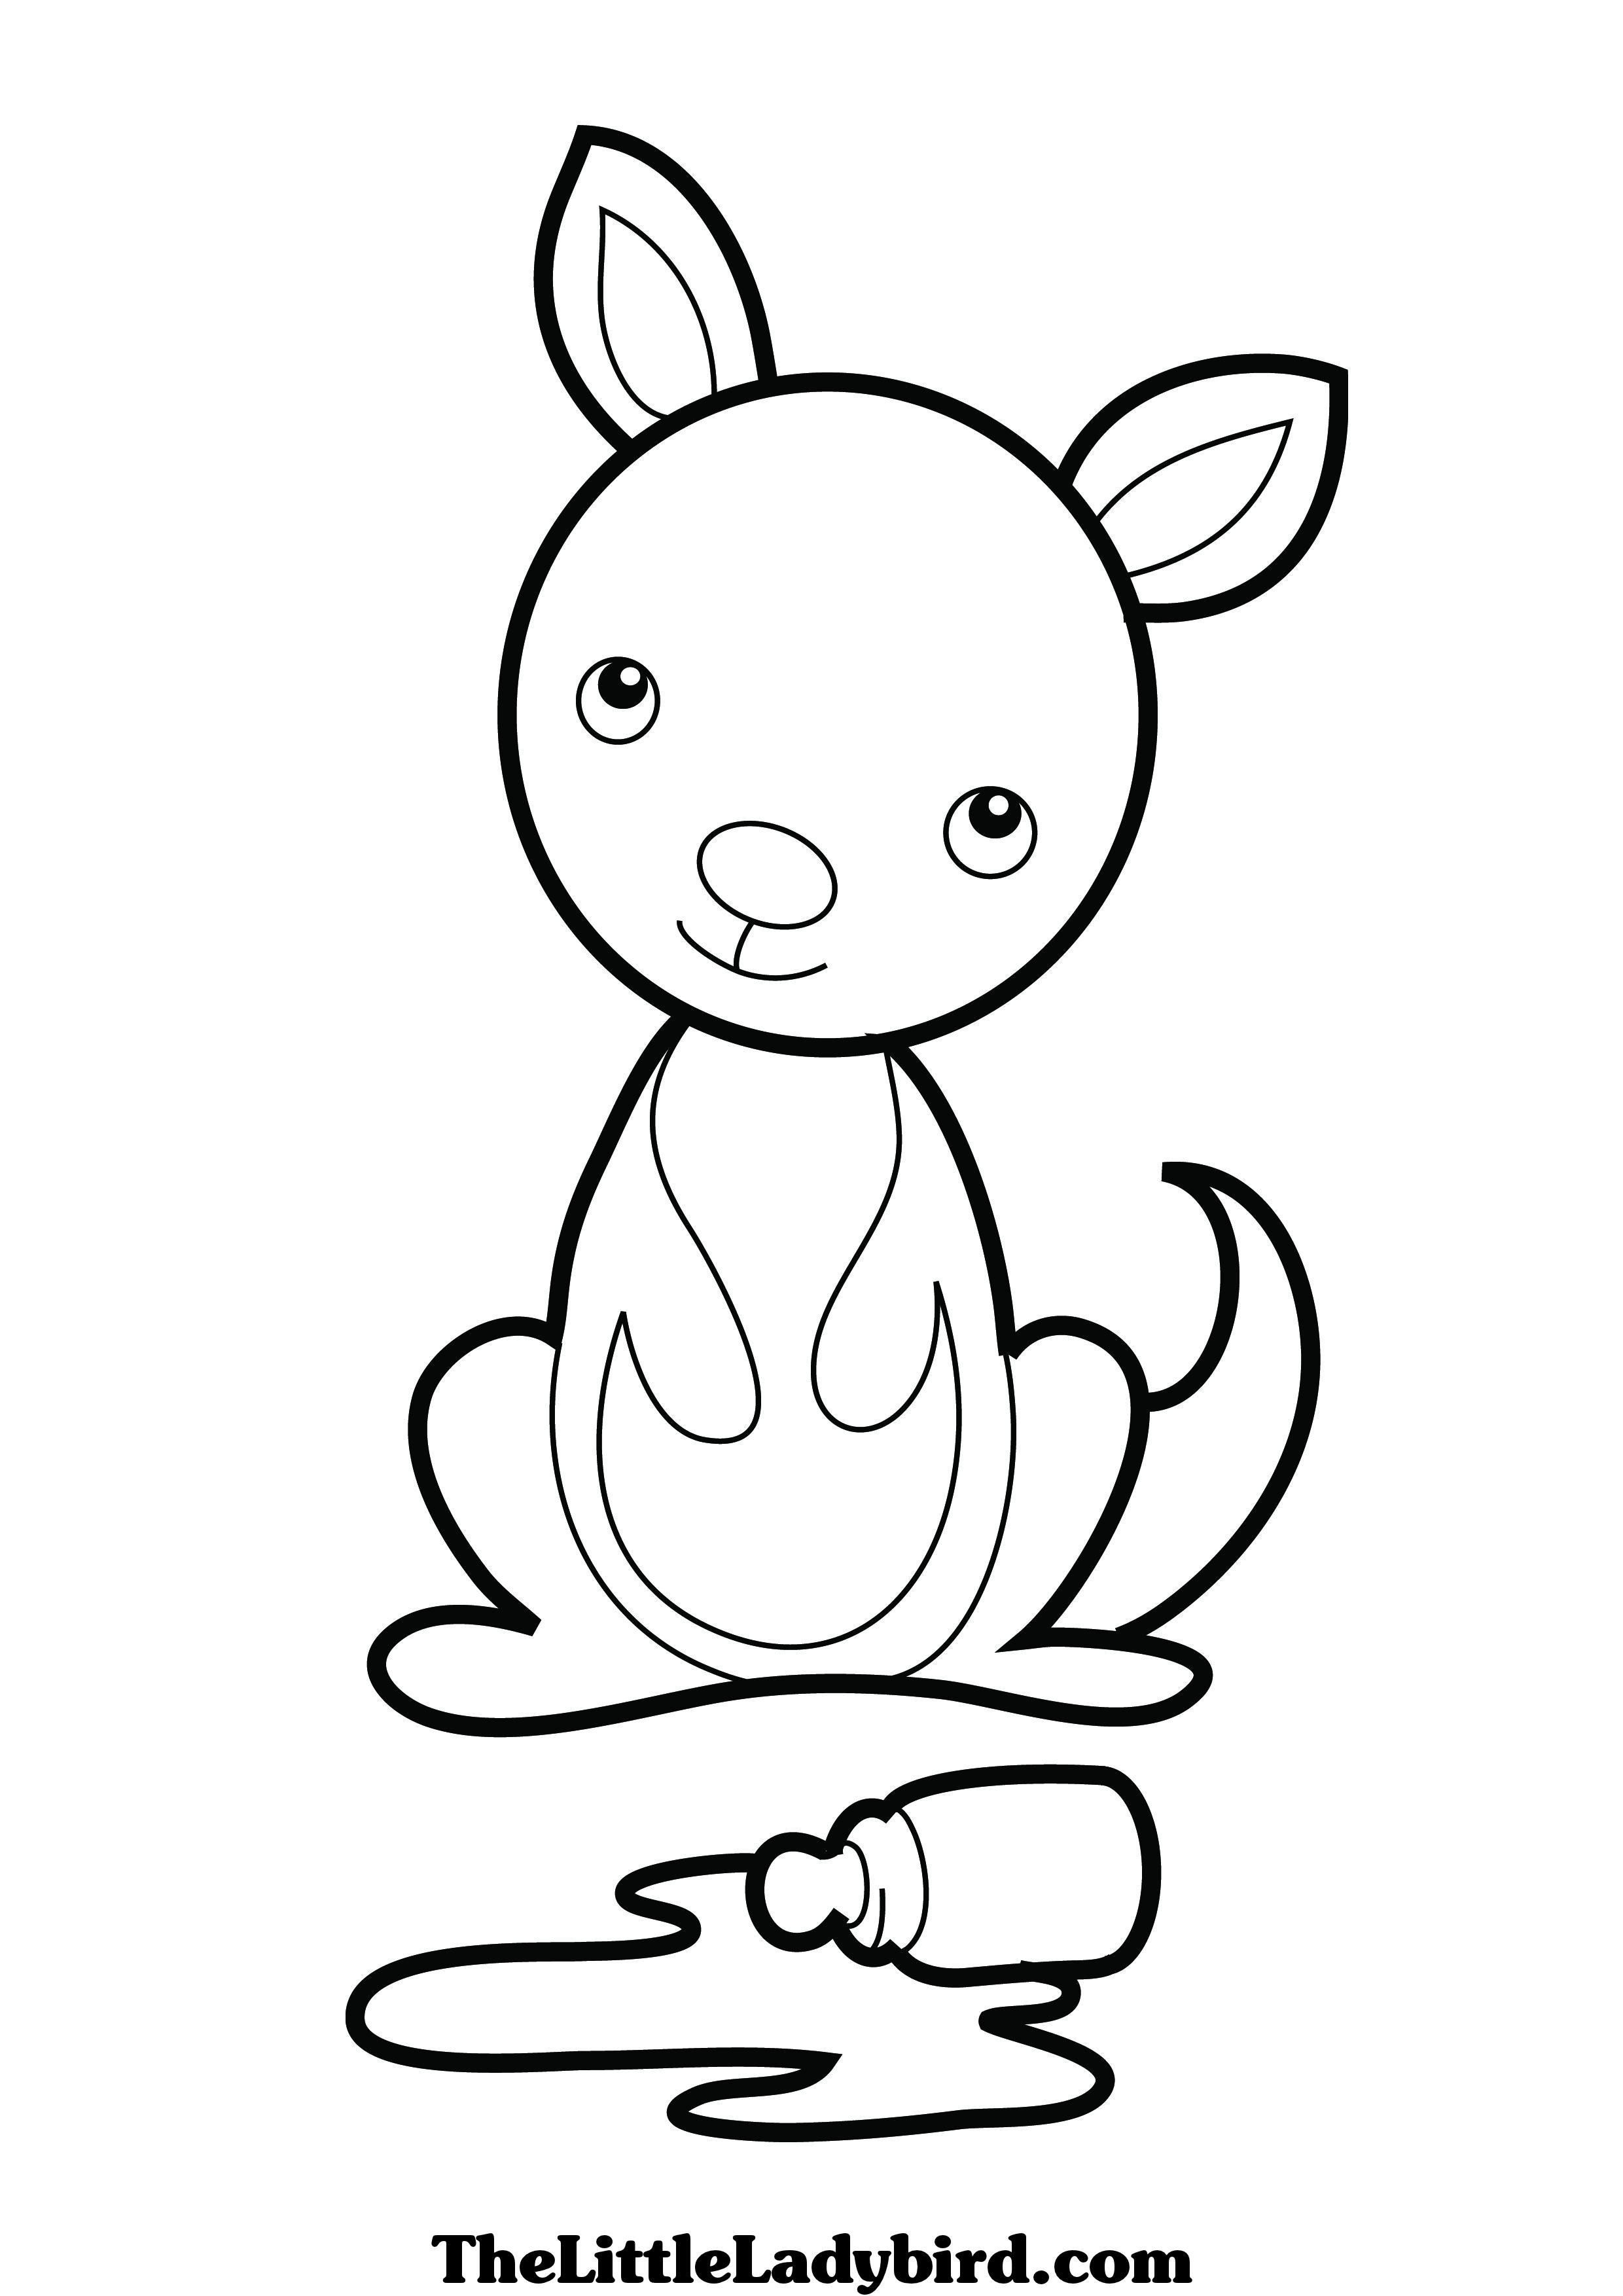 2480x3508 Baby Kangaroo Coloring Pages Colouring In Beatiful Draw Print Page